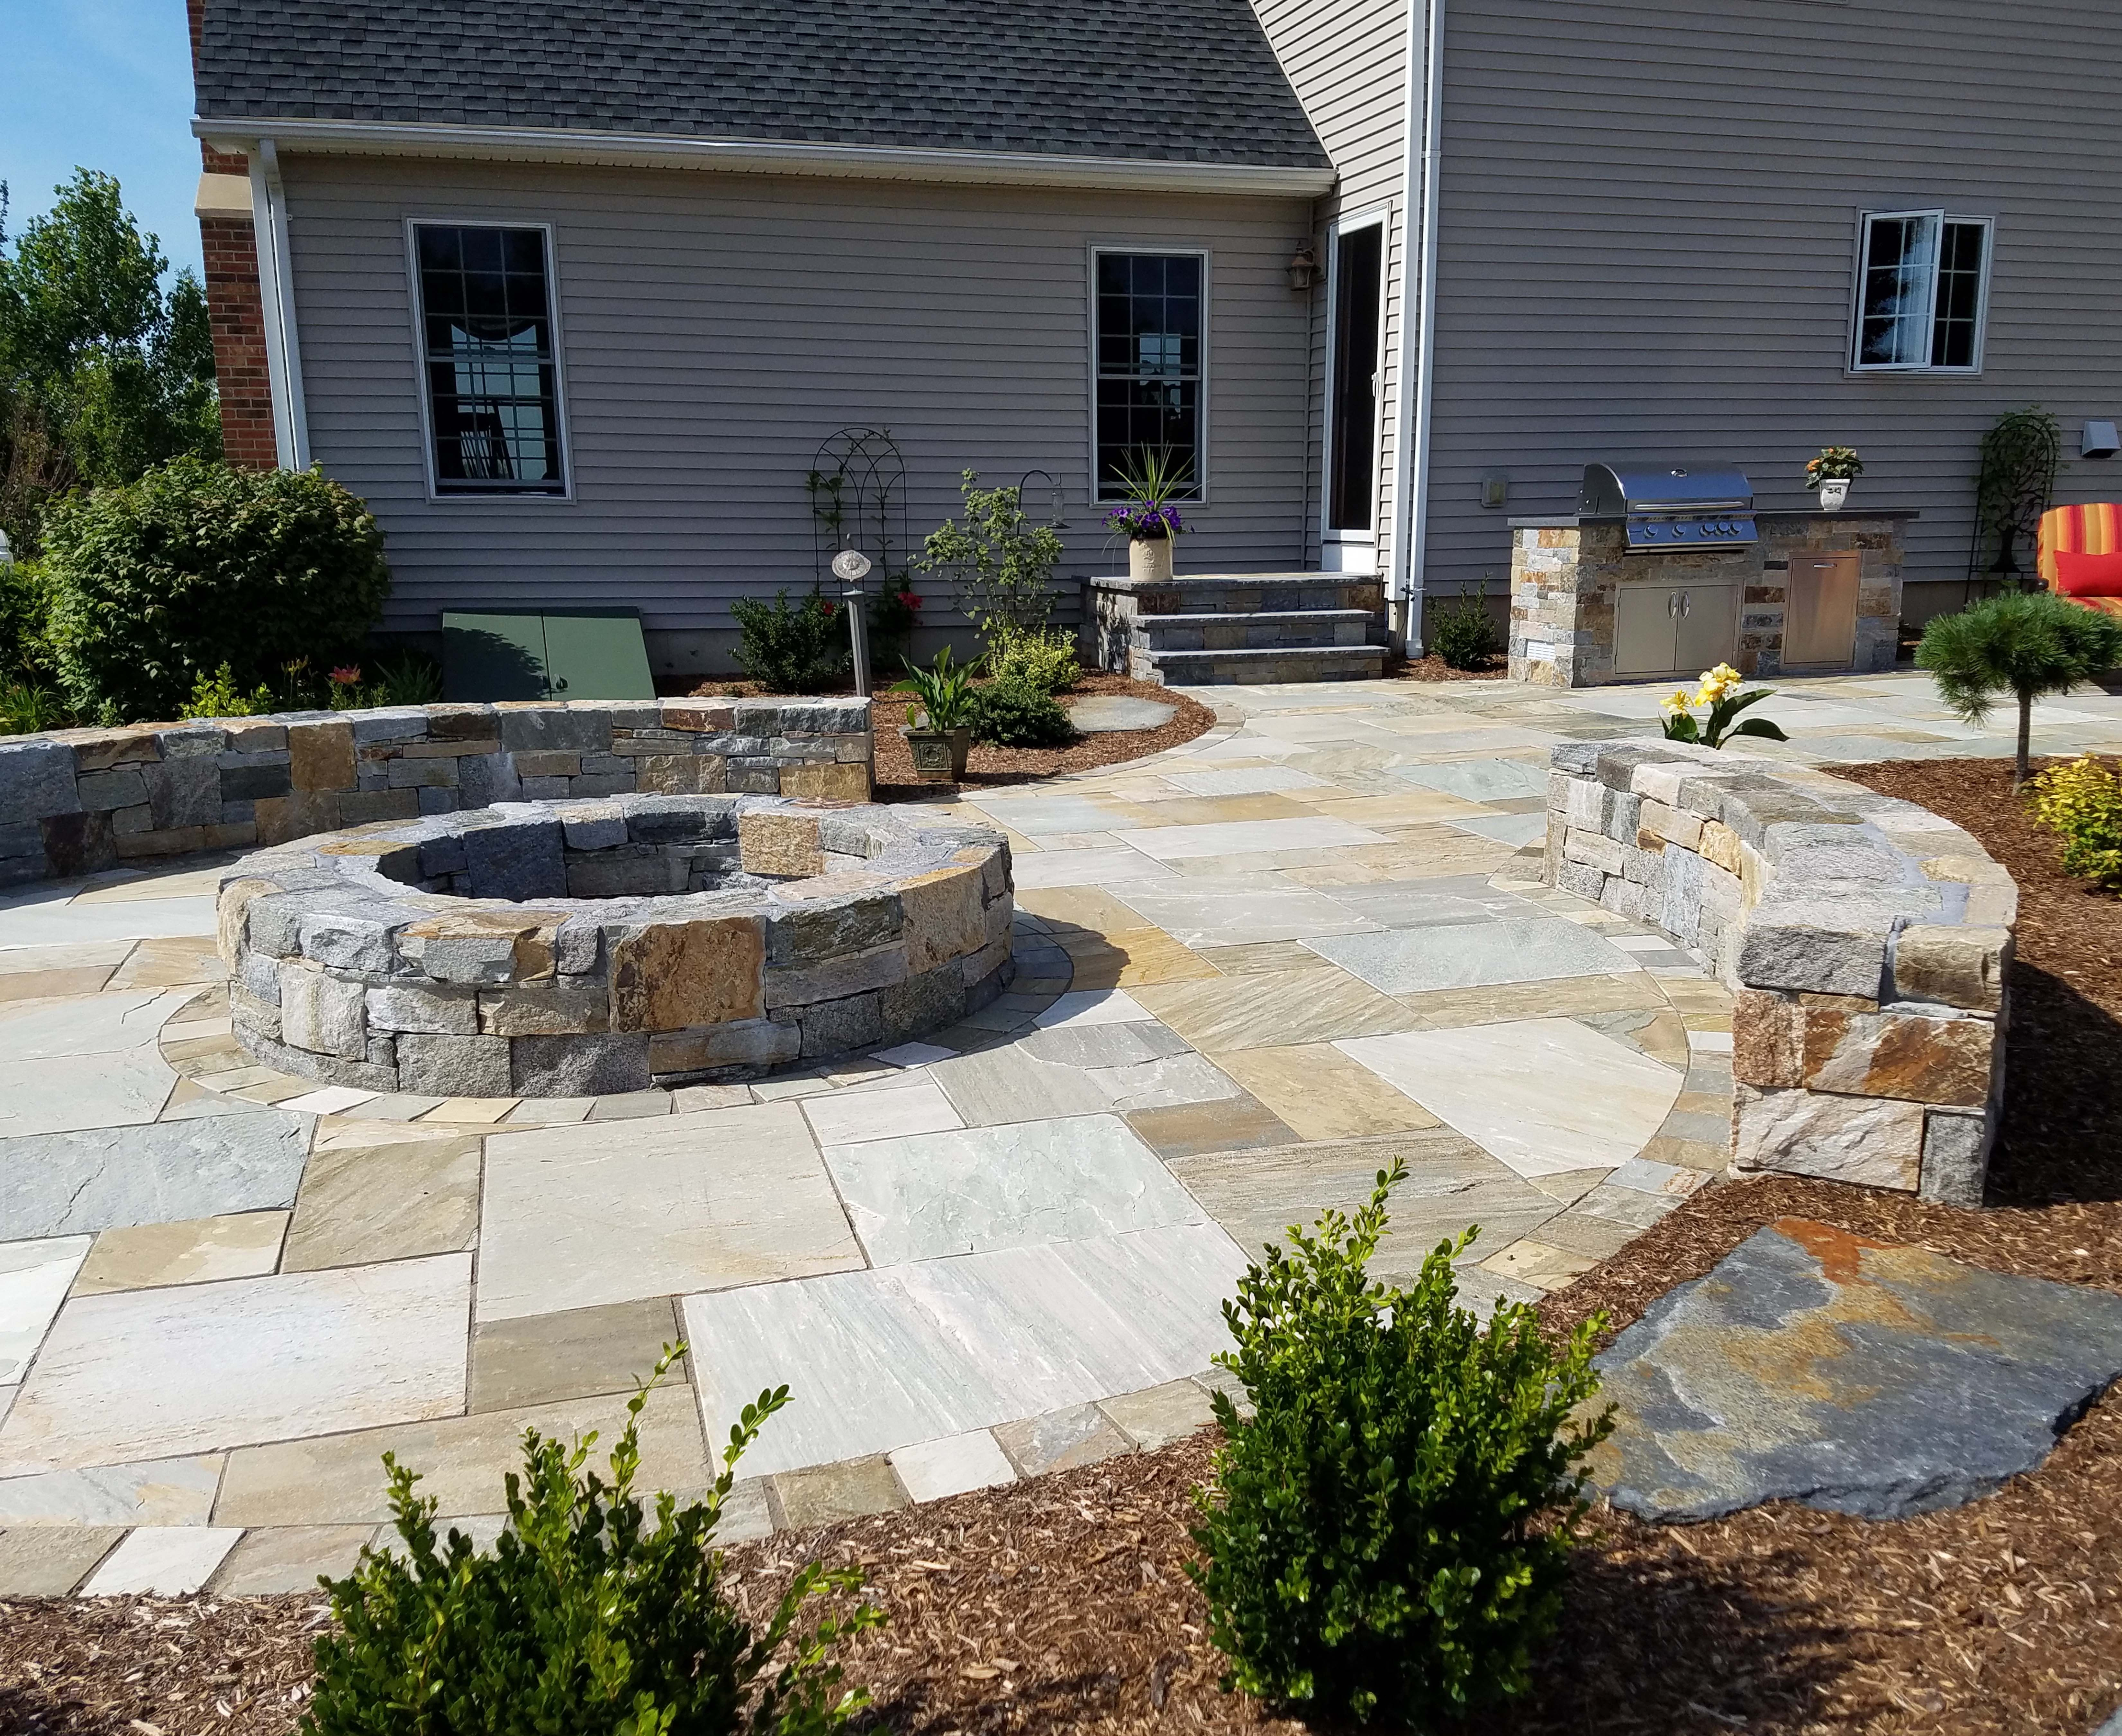 A Natural Stone Fire Pit, Sitting Walls, And Patio Built By Bahler Brothers  In